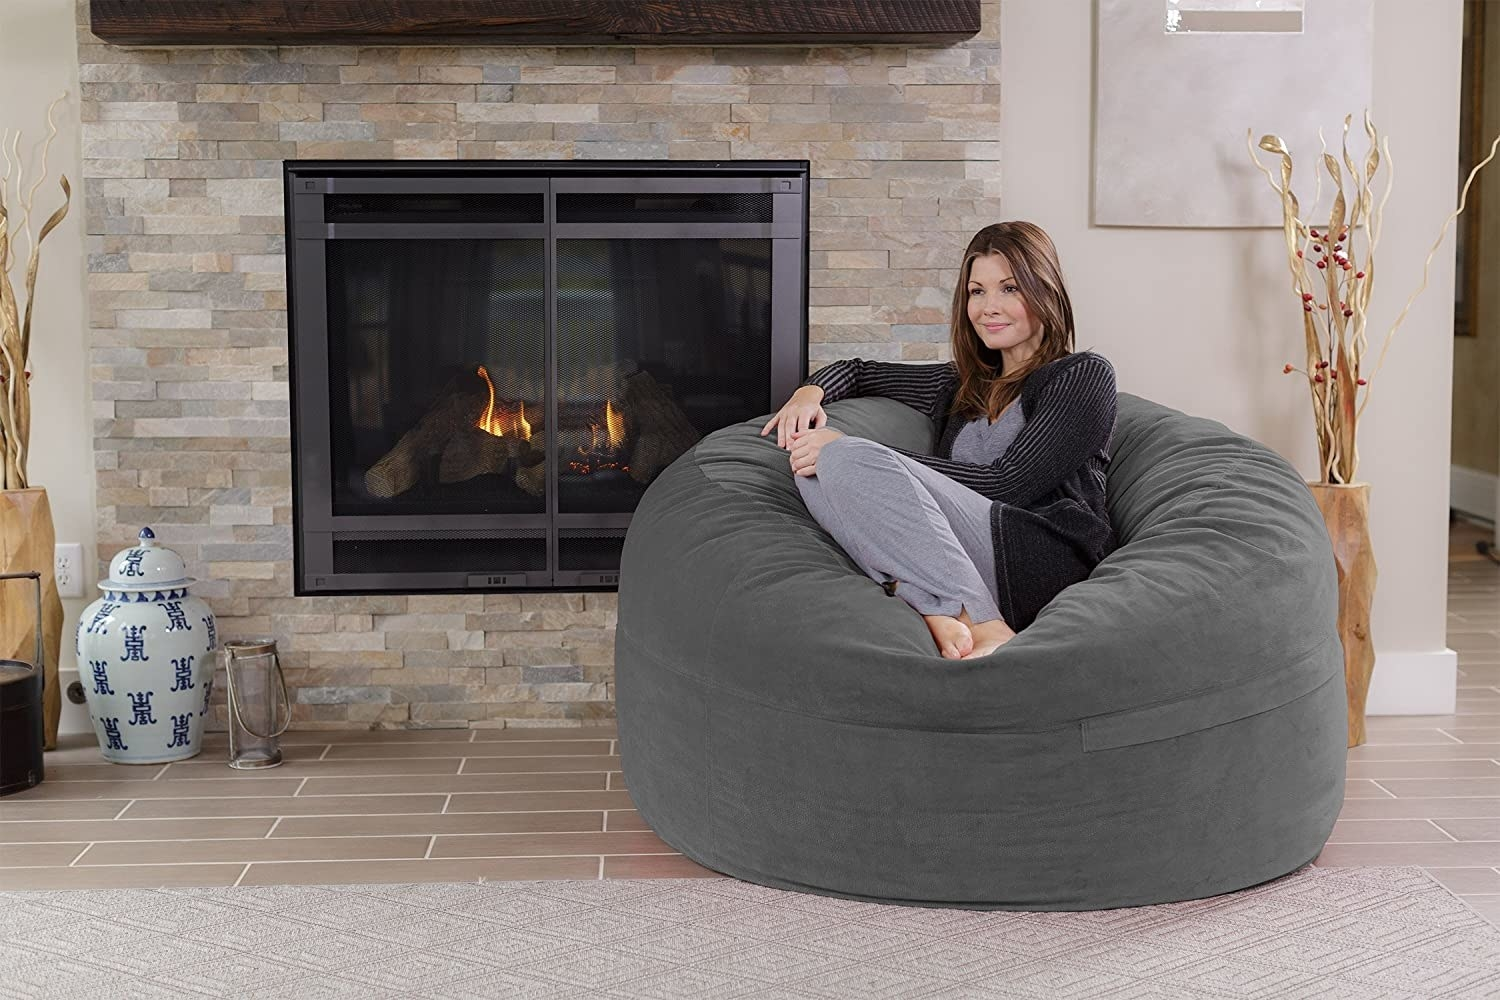 Model in a gray oversized bean bag style lounger